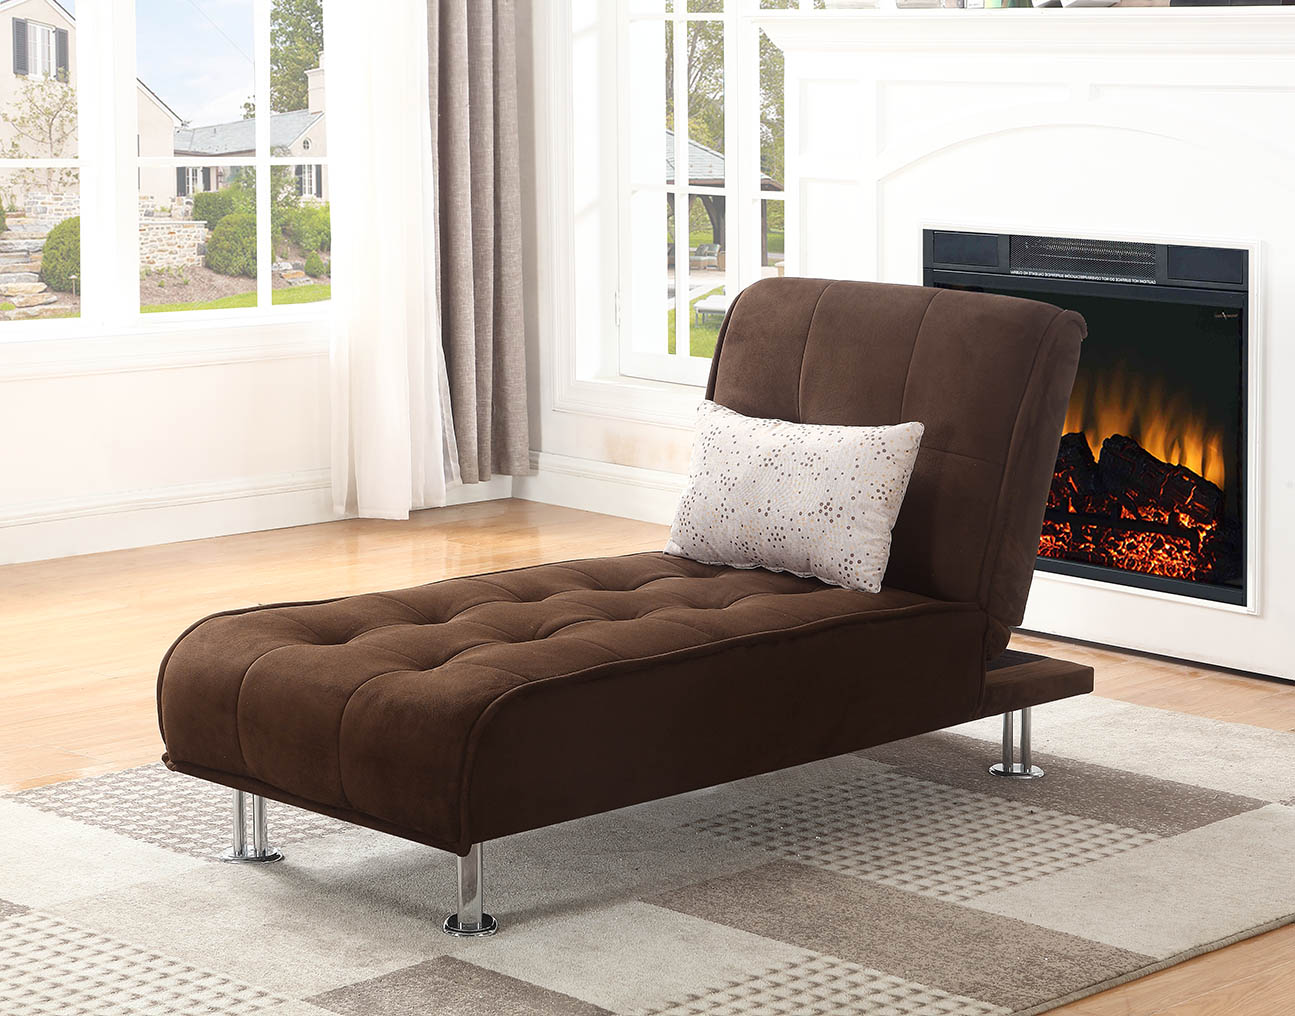 dual woptions coaster fabric lounge p chaise colored by options w in image rosalie sofa